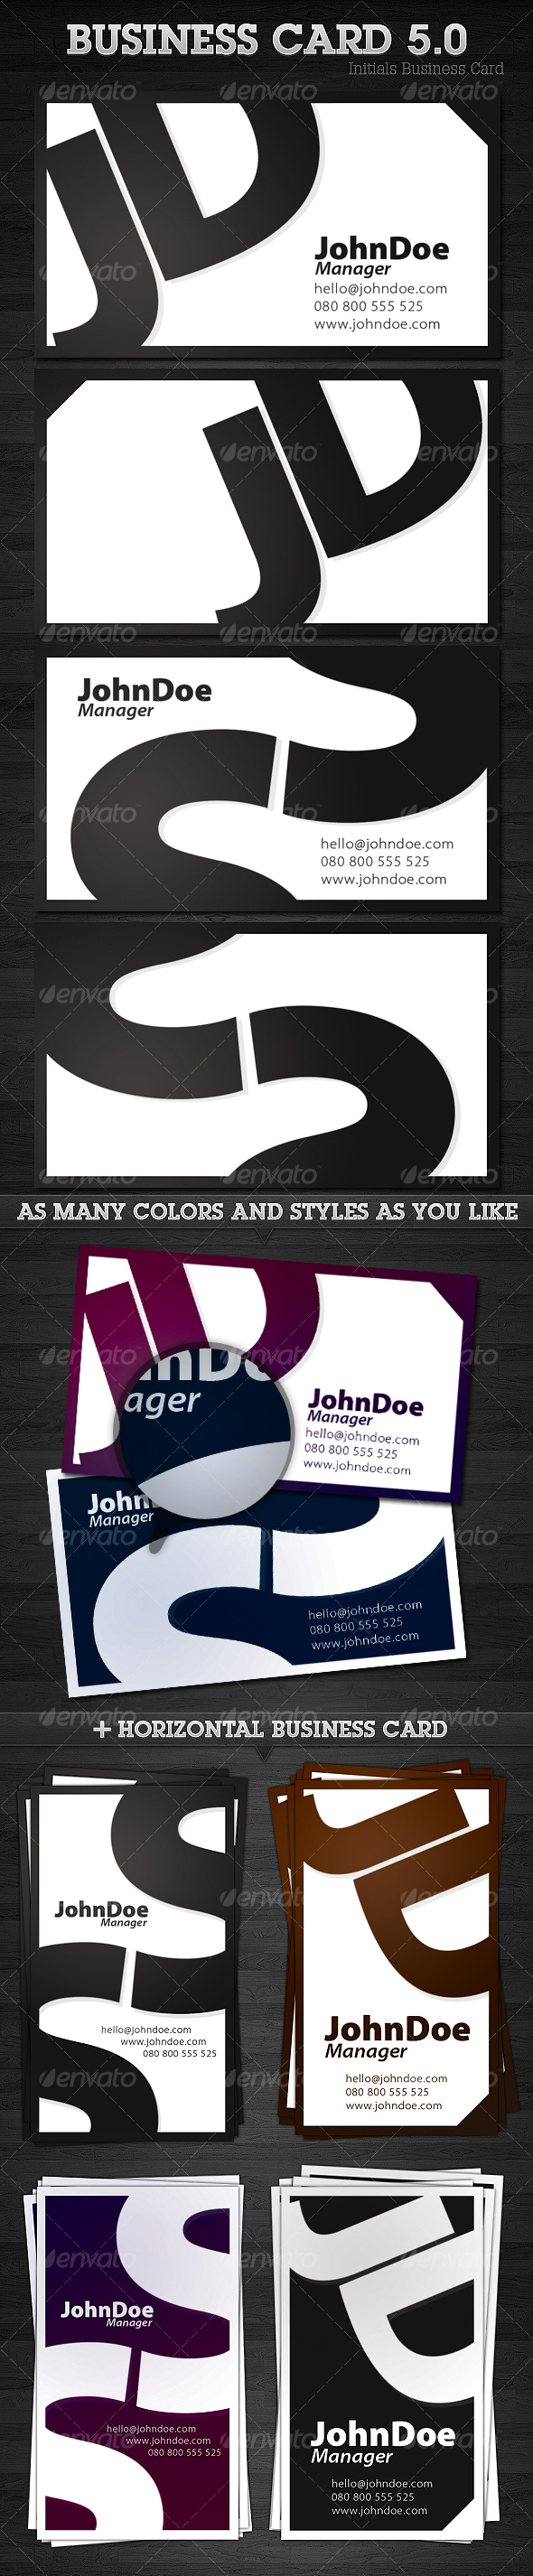 Initials Business Card 5.0 - Corporate Business Cards